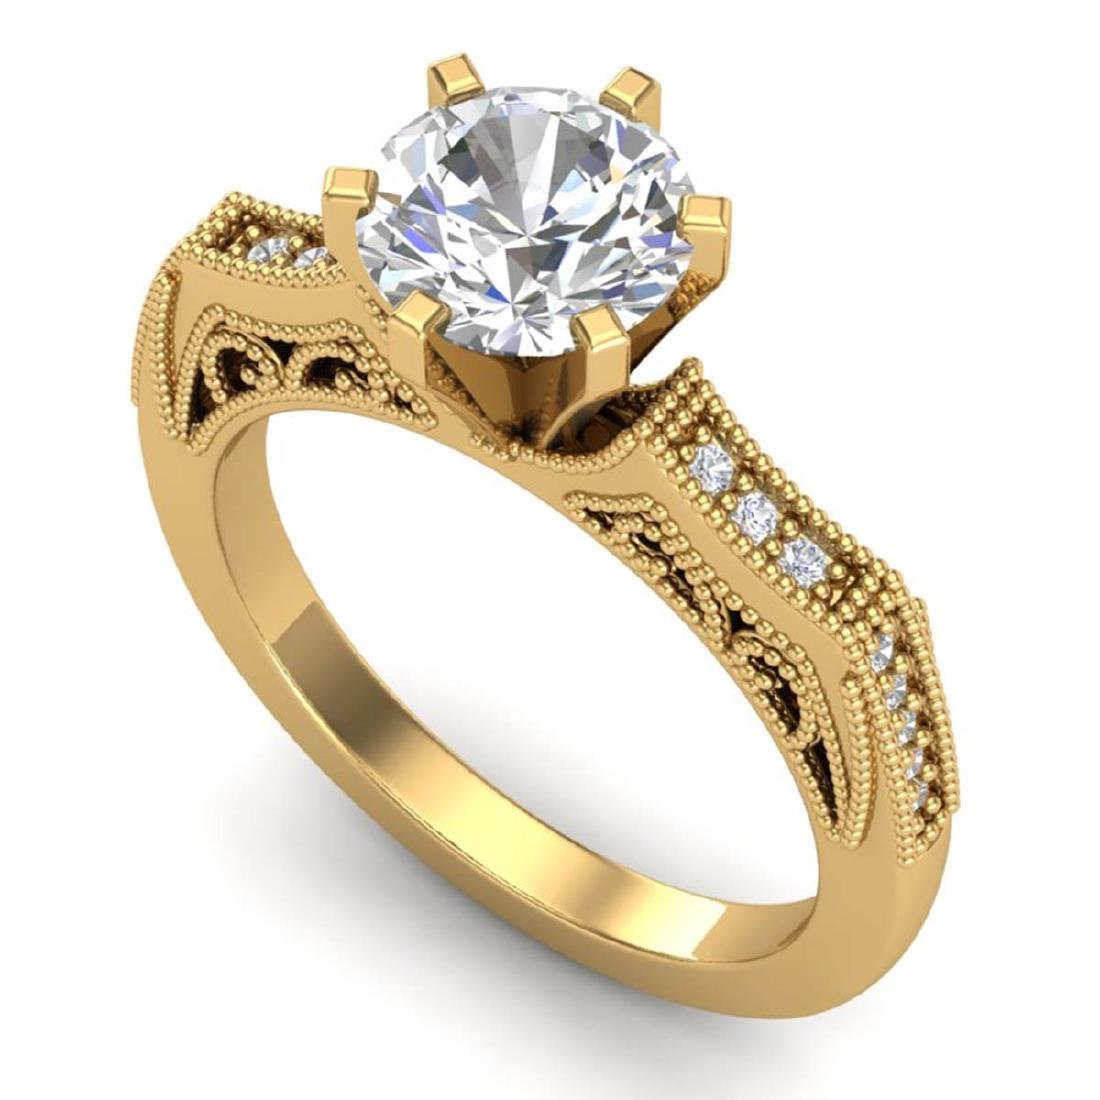 1.51 CTW VS/SI Diamond Solitaire Art Deco Ring 18K